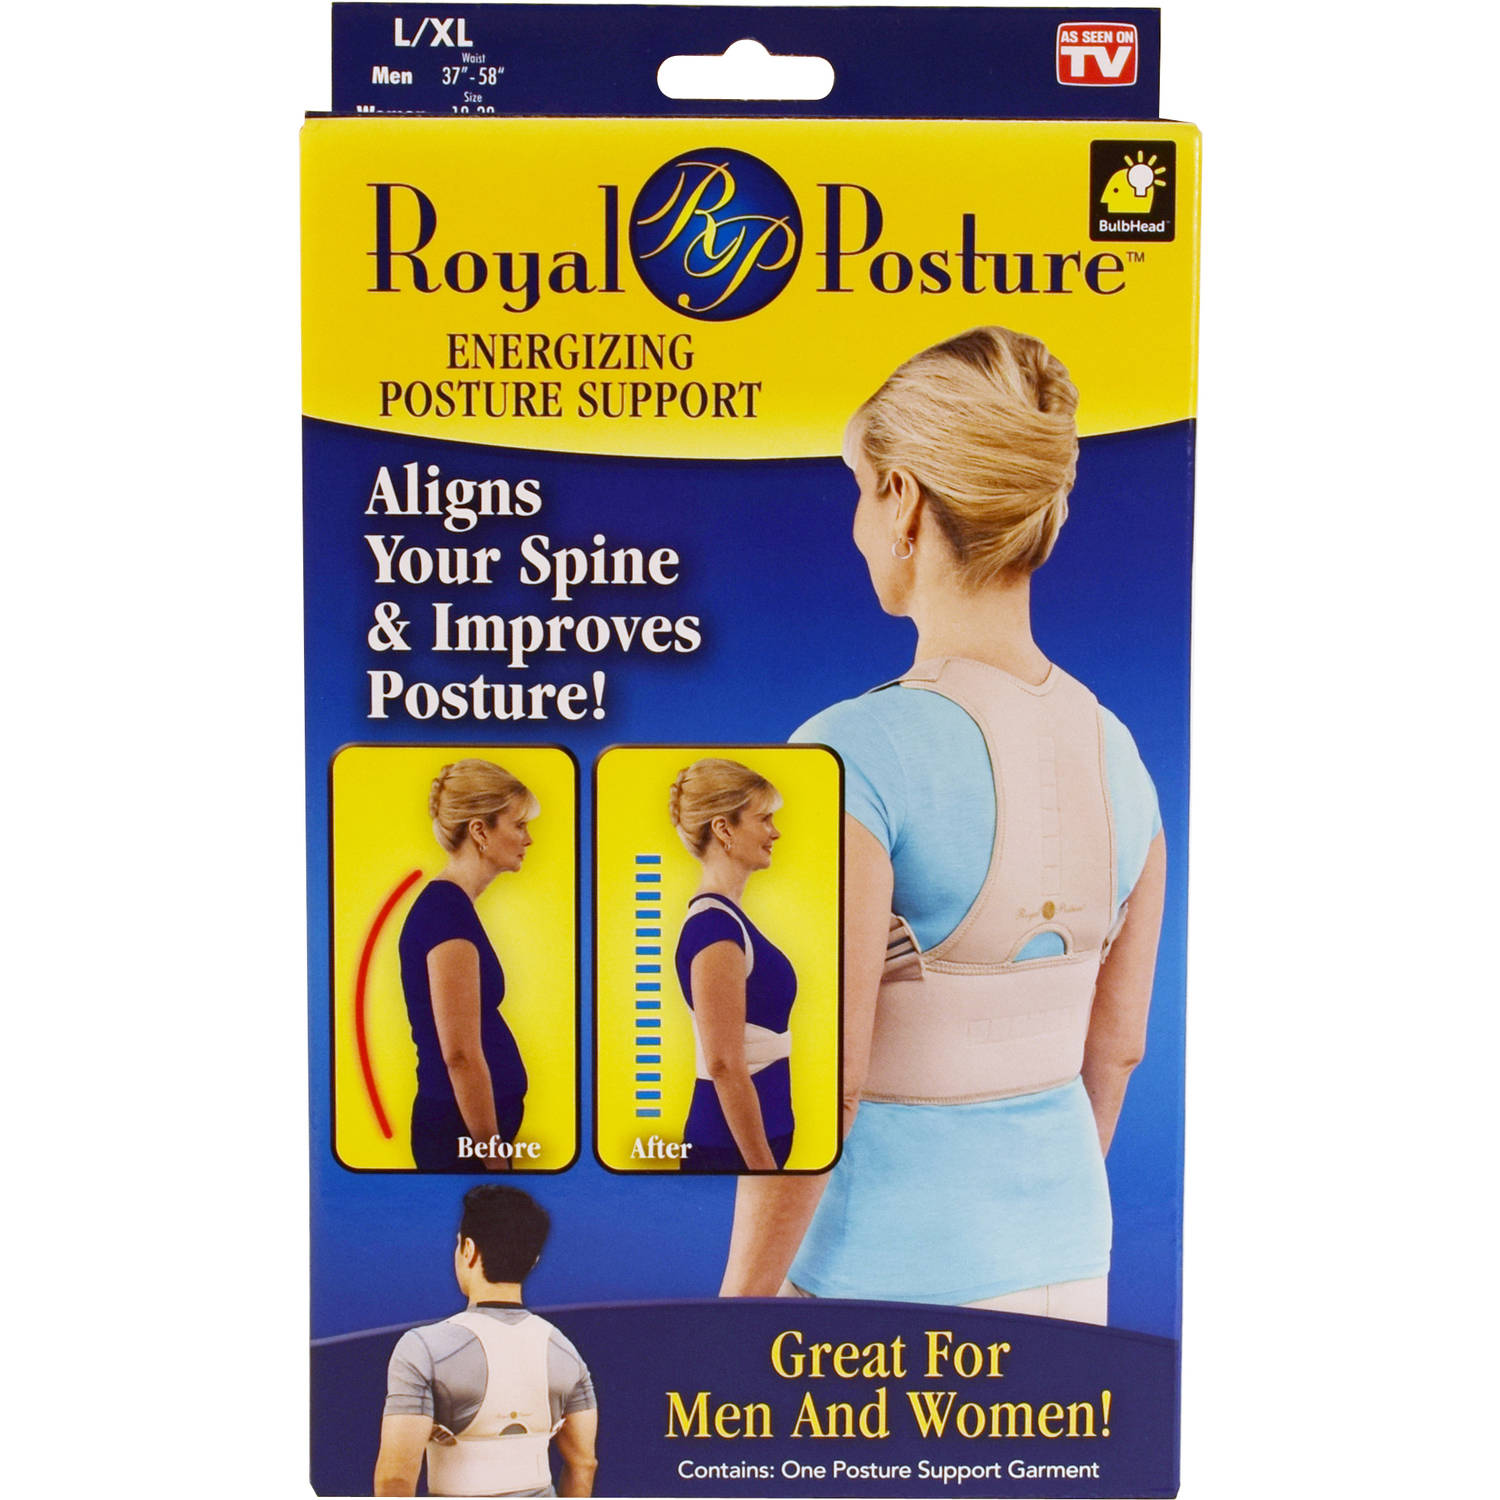 Royal Posture Back Support, L/XL